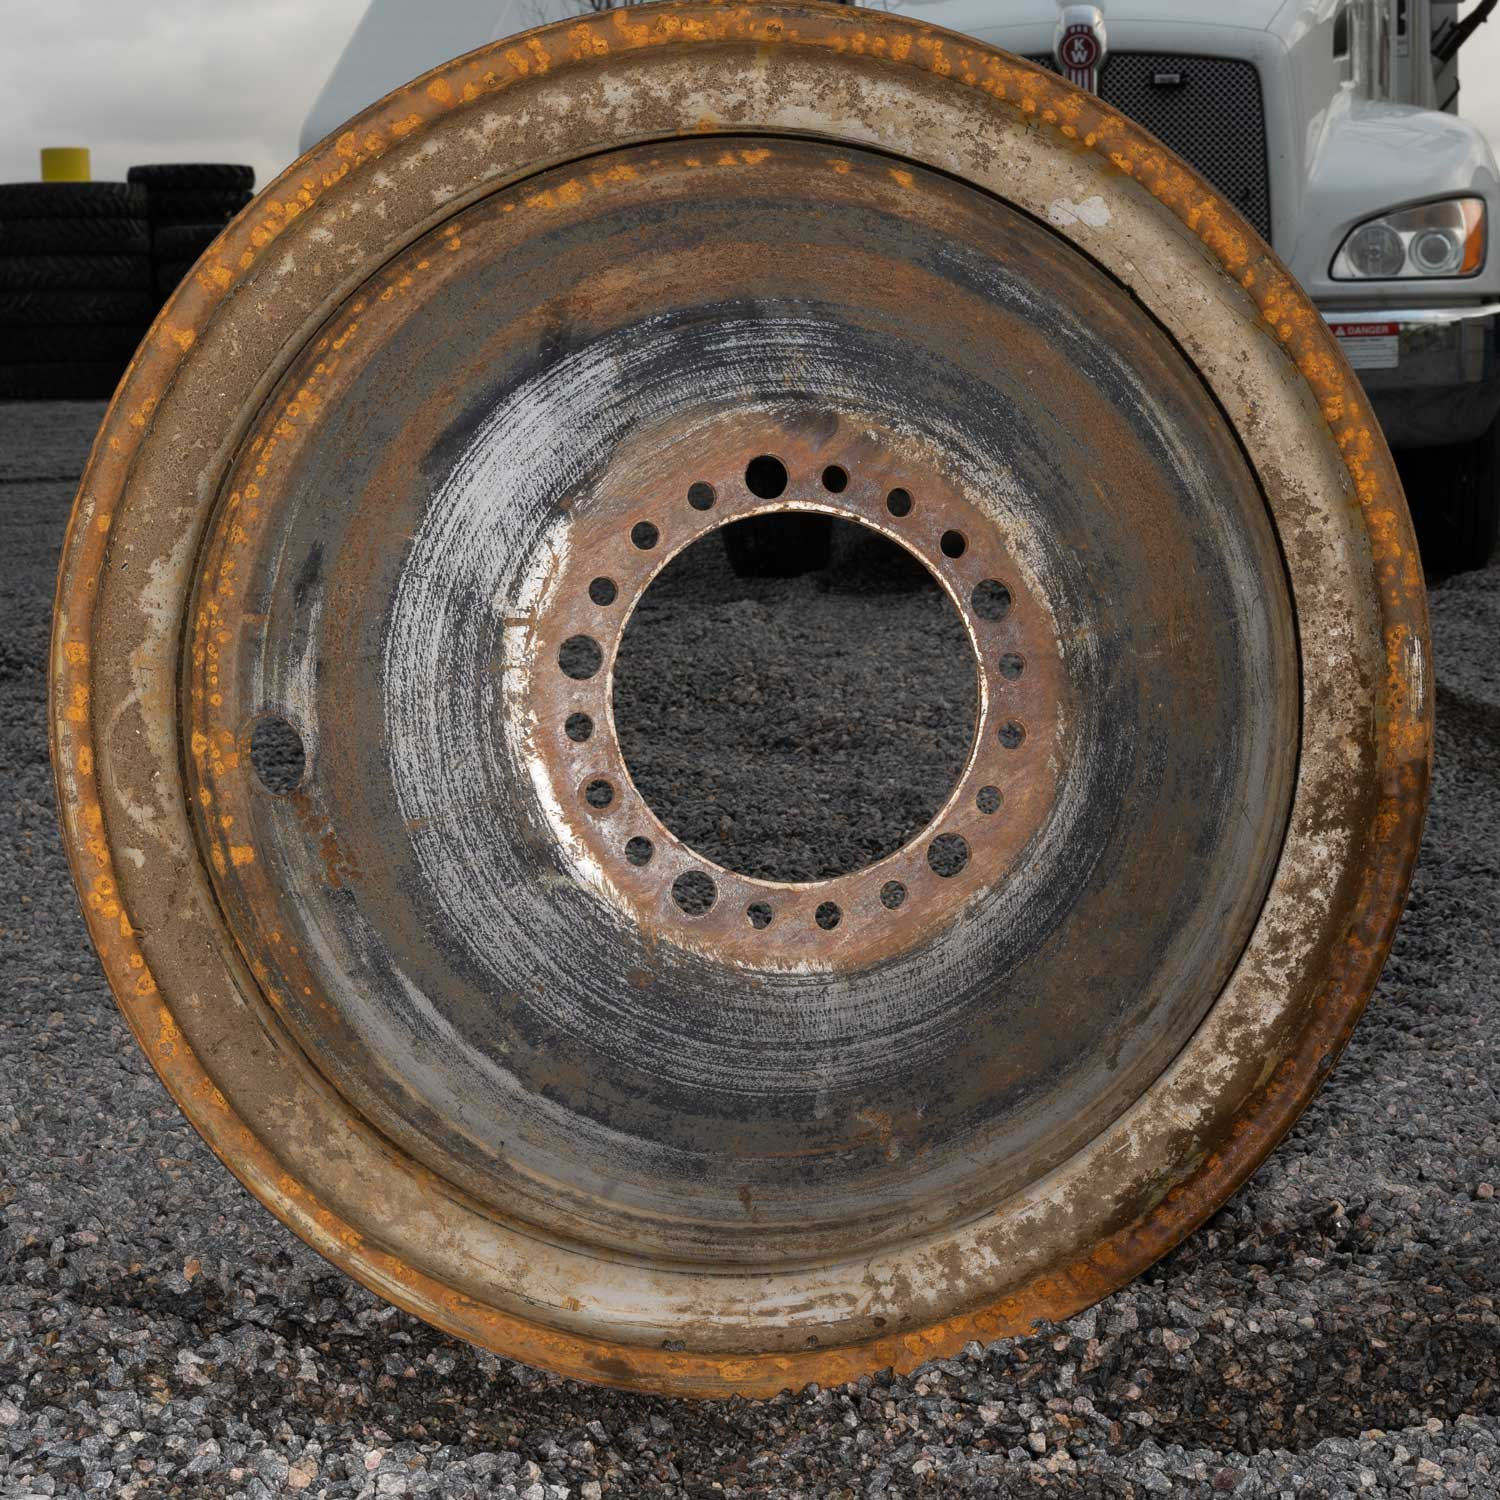 agricultural rim in fair condition